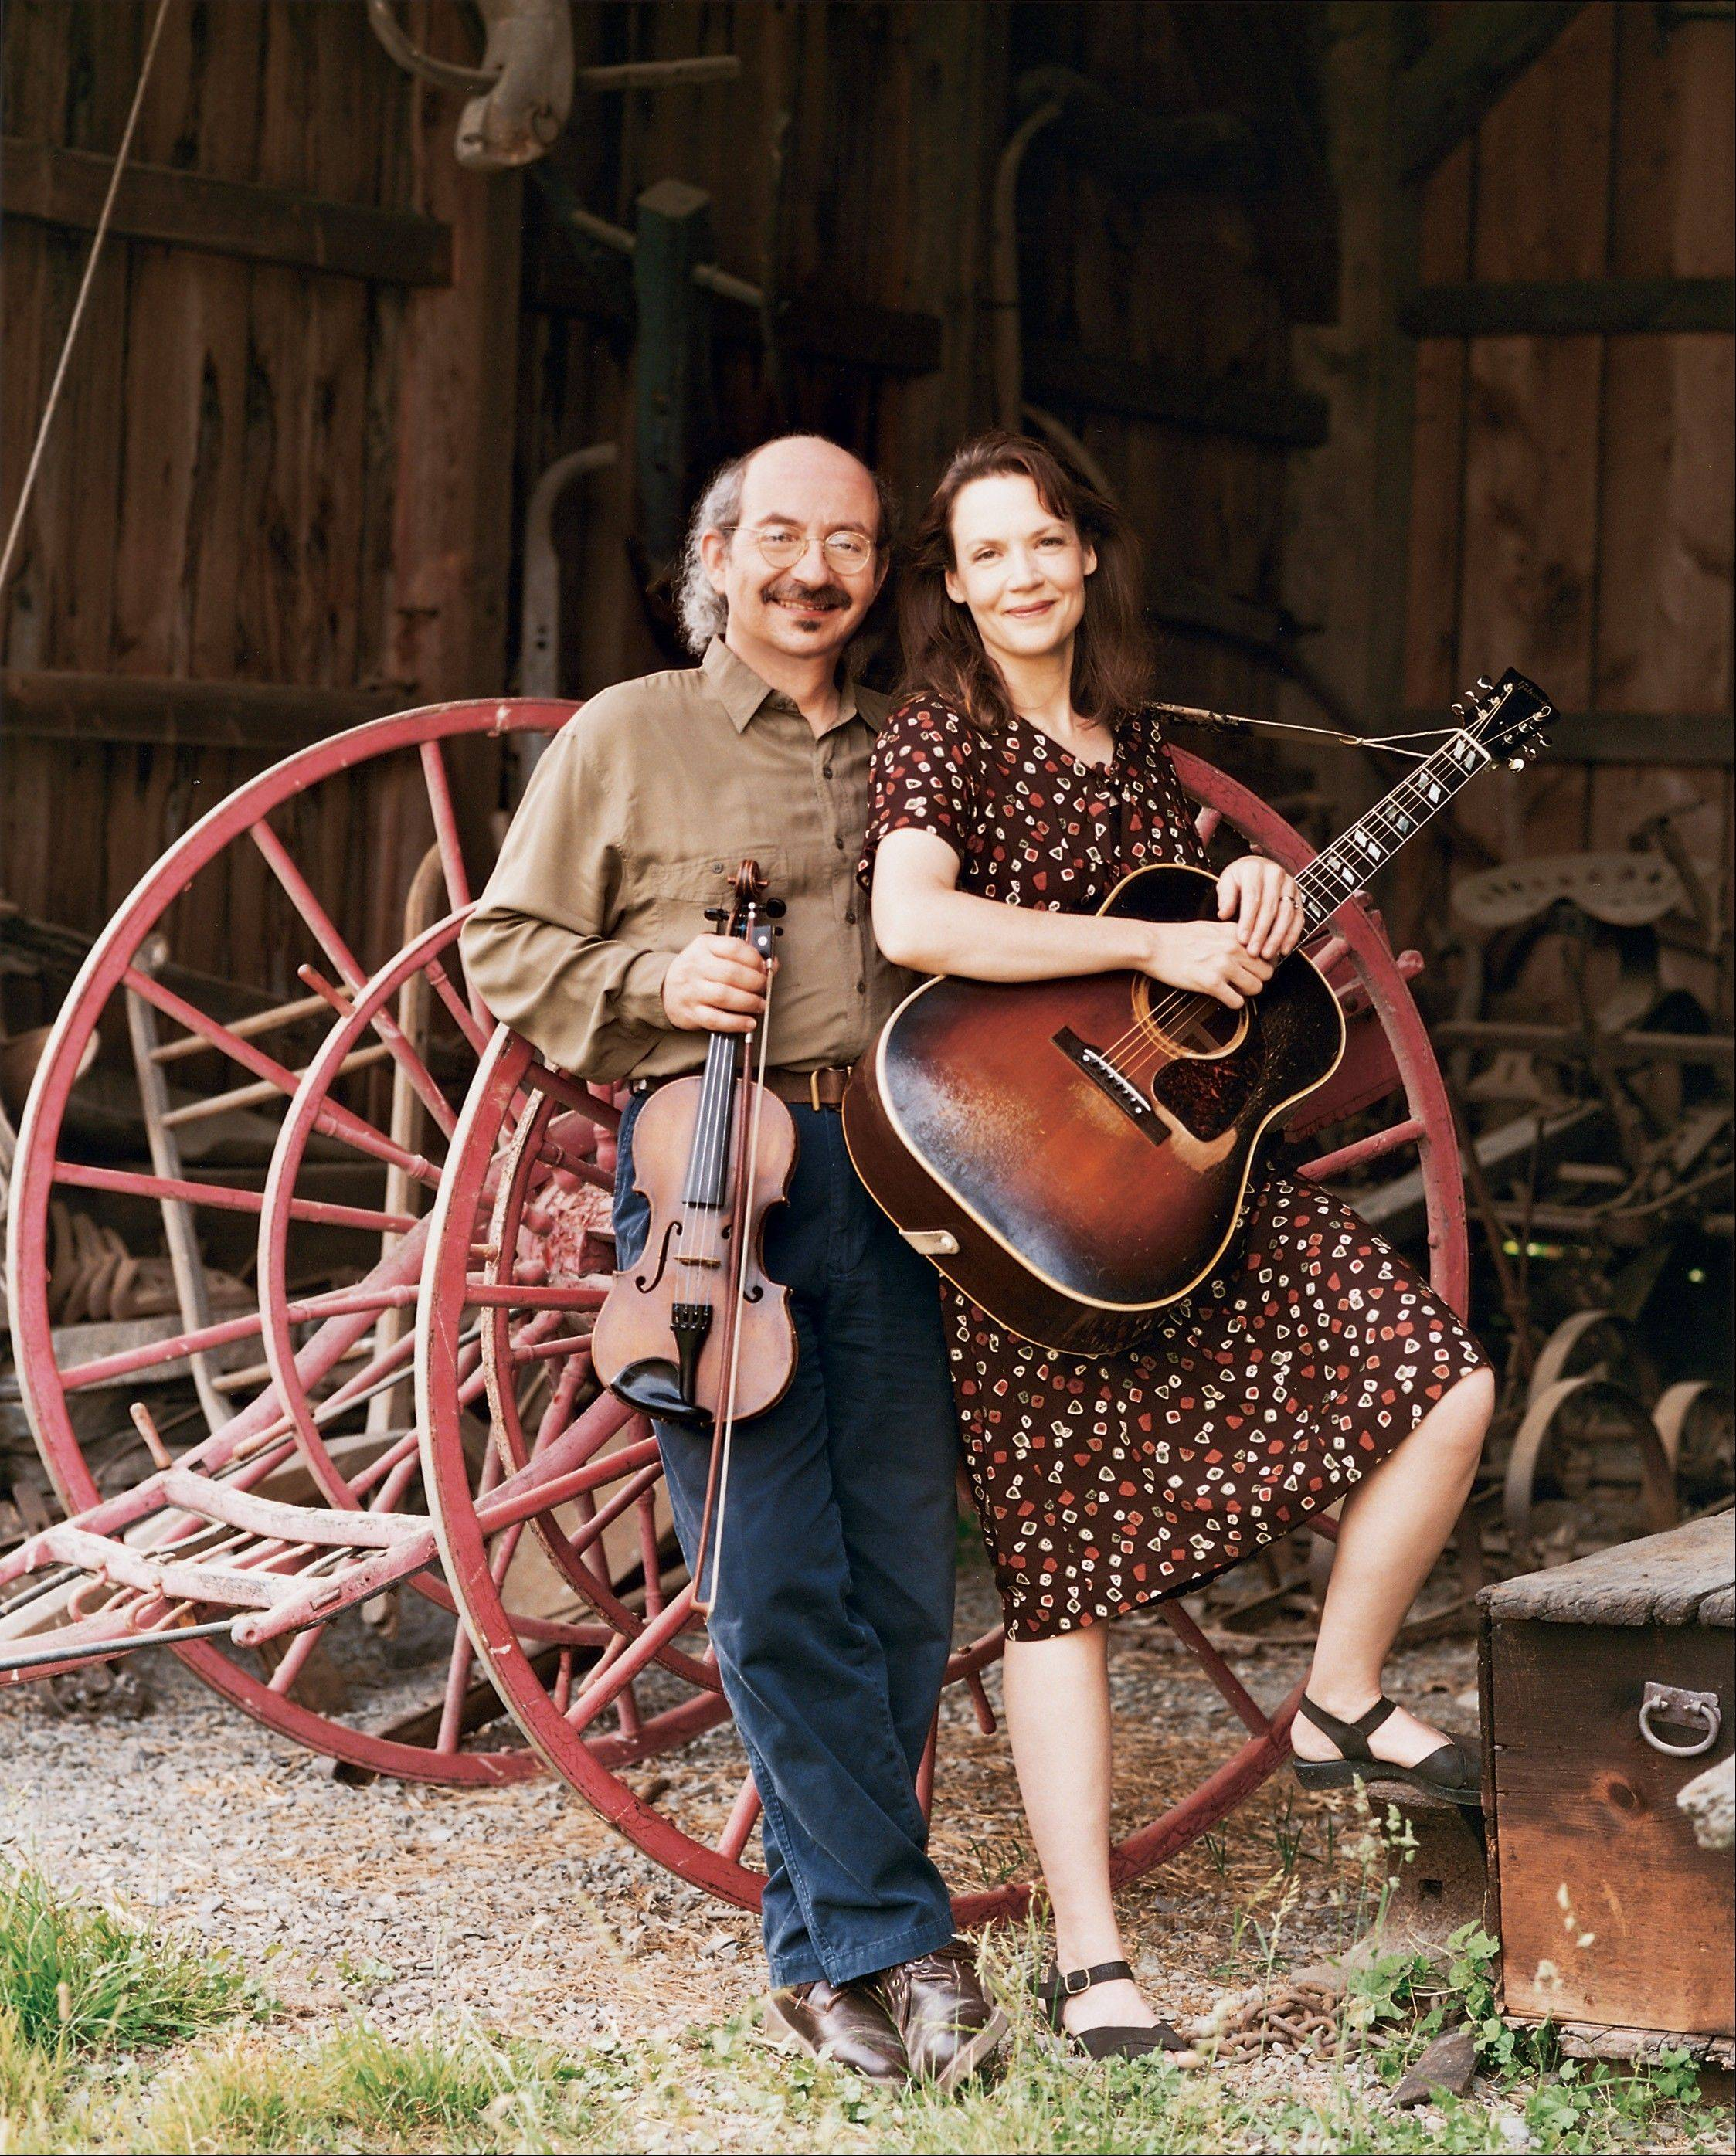 Jay Ungar and Molly Mason perform American roots music at 7:30 p.m. Friday, Nov. 2, to the Norris Cultural Arts Center in St. Charles.